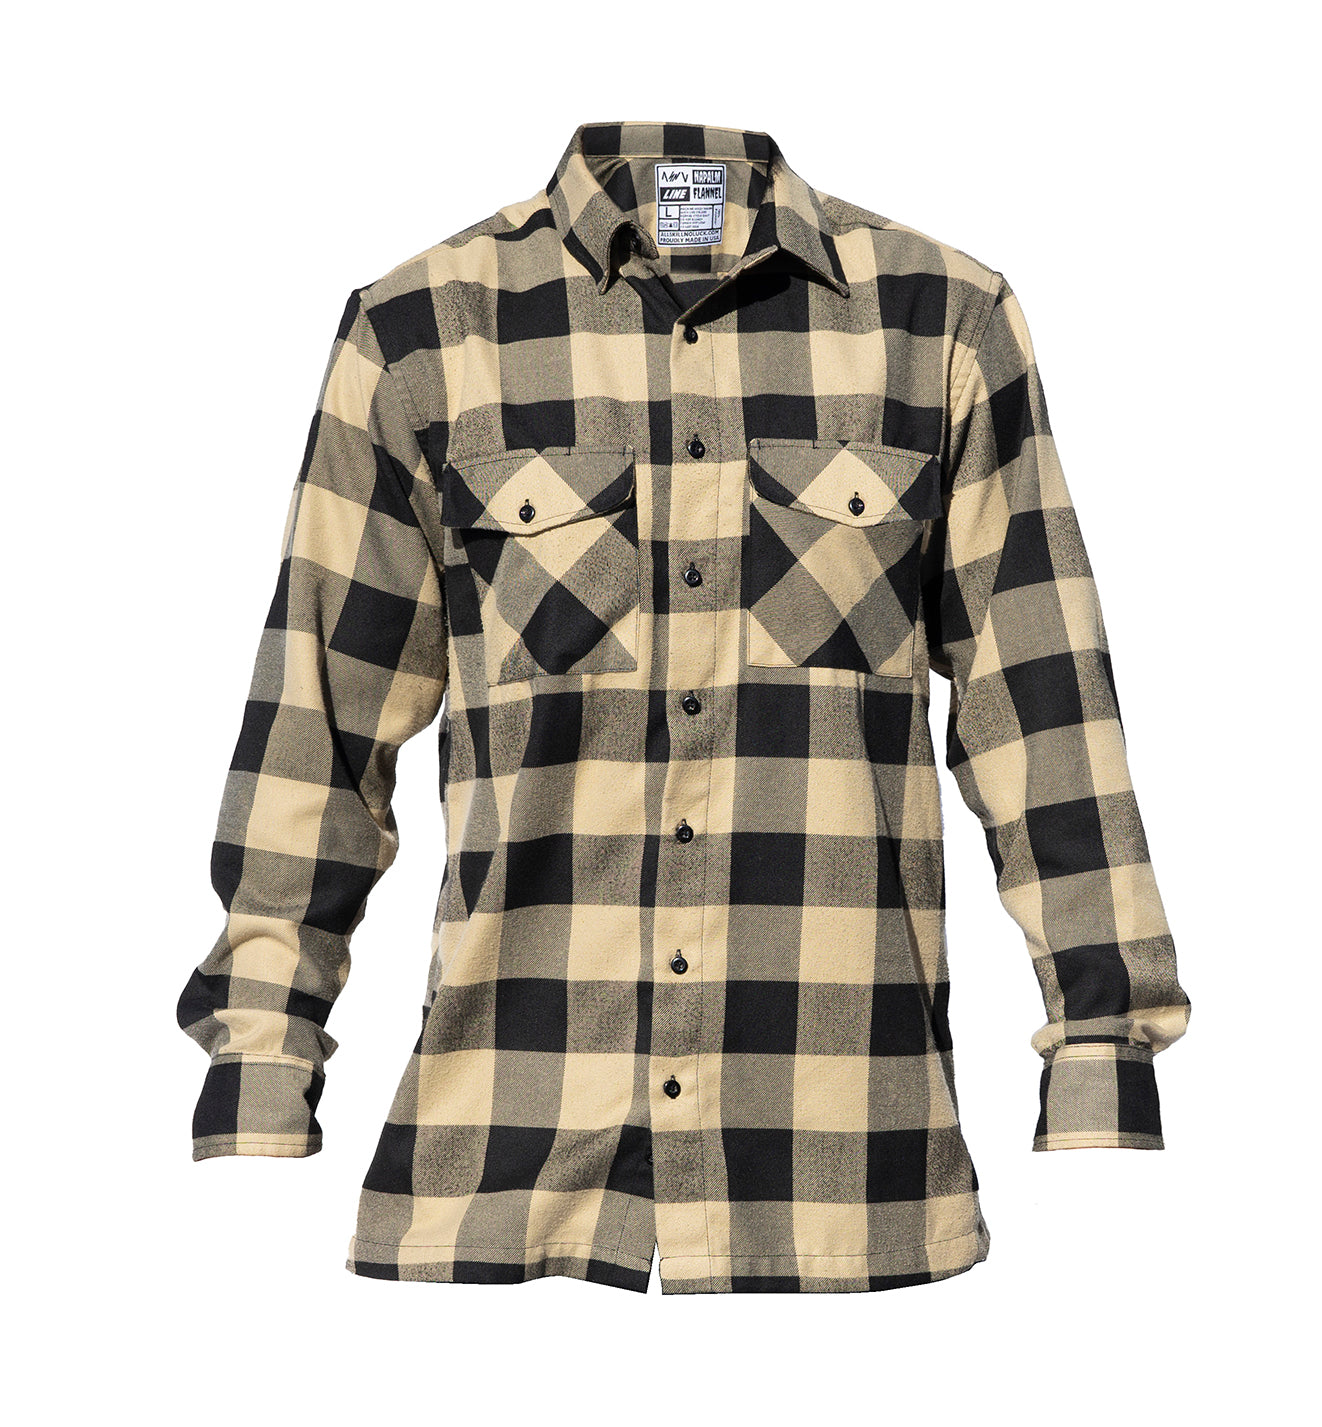 NAPALM FLANNEL Black & Tan